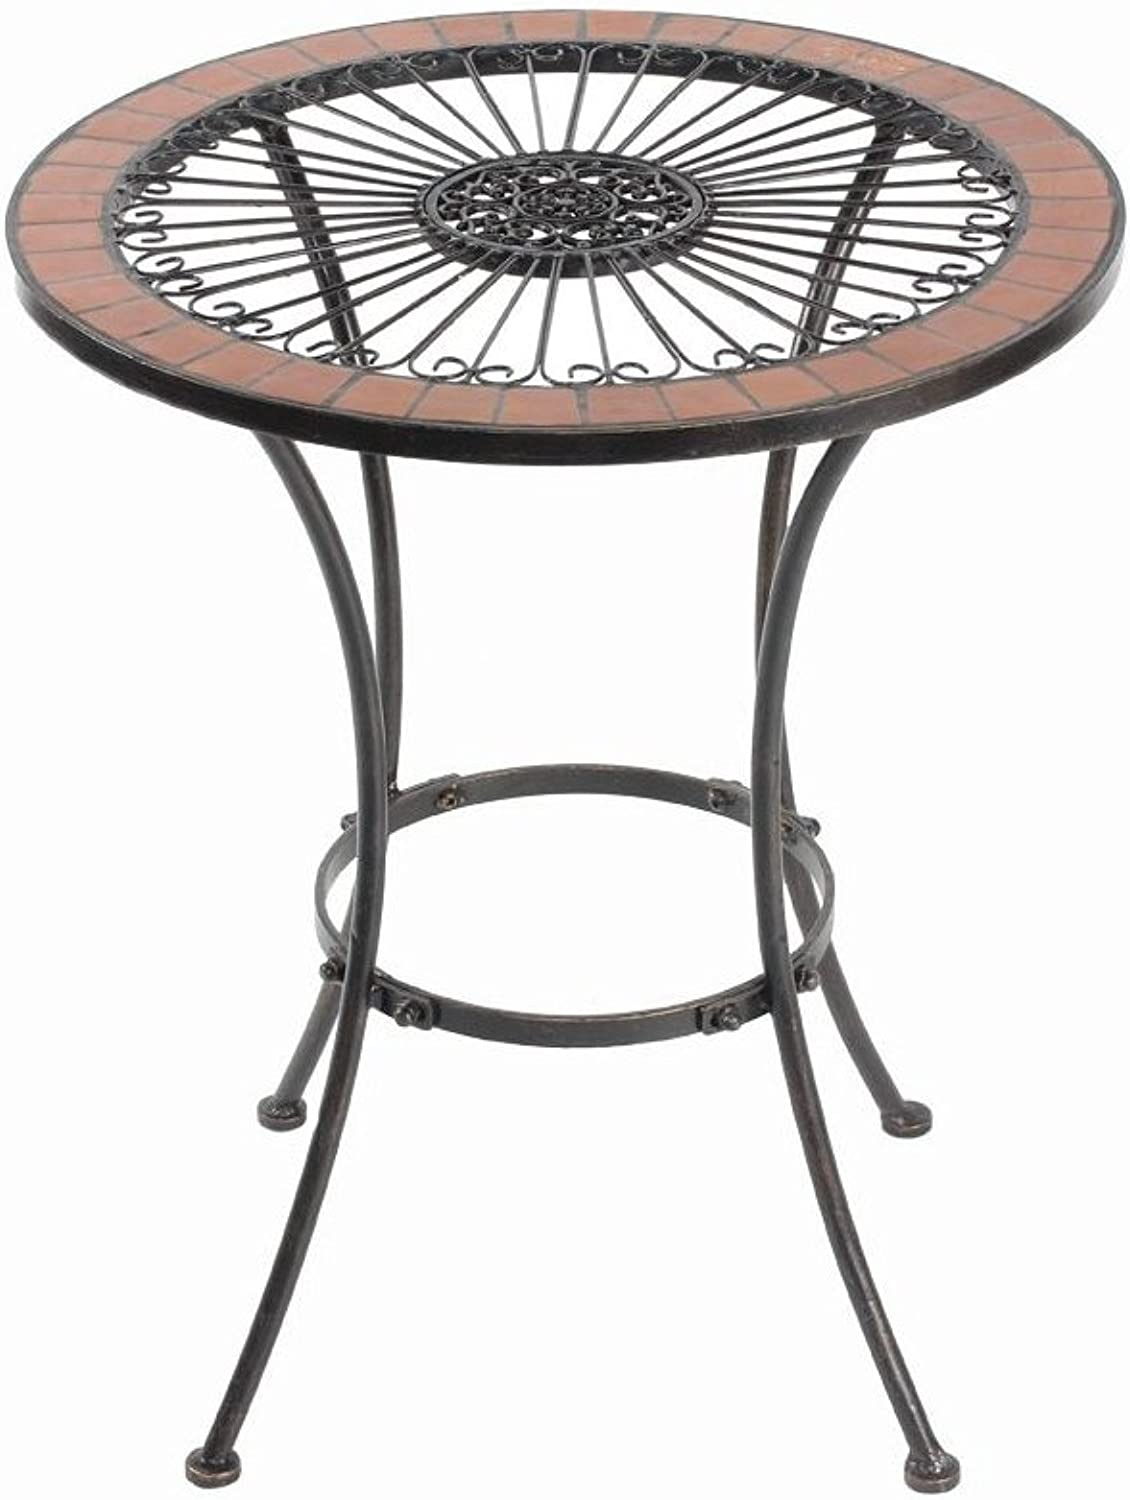 Essential Decor Entrada Collection GL79998 Round Mosaic Table